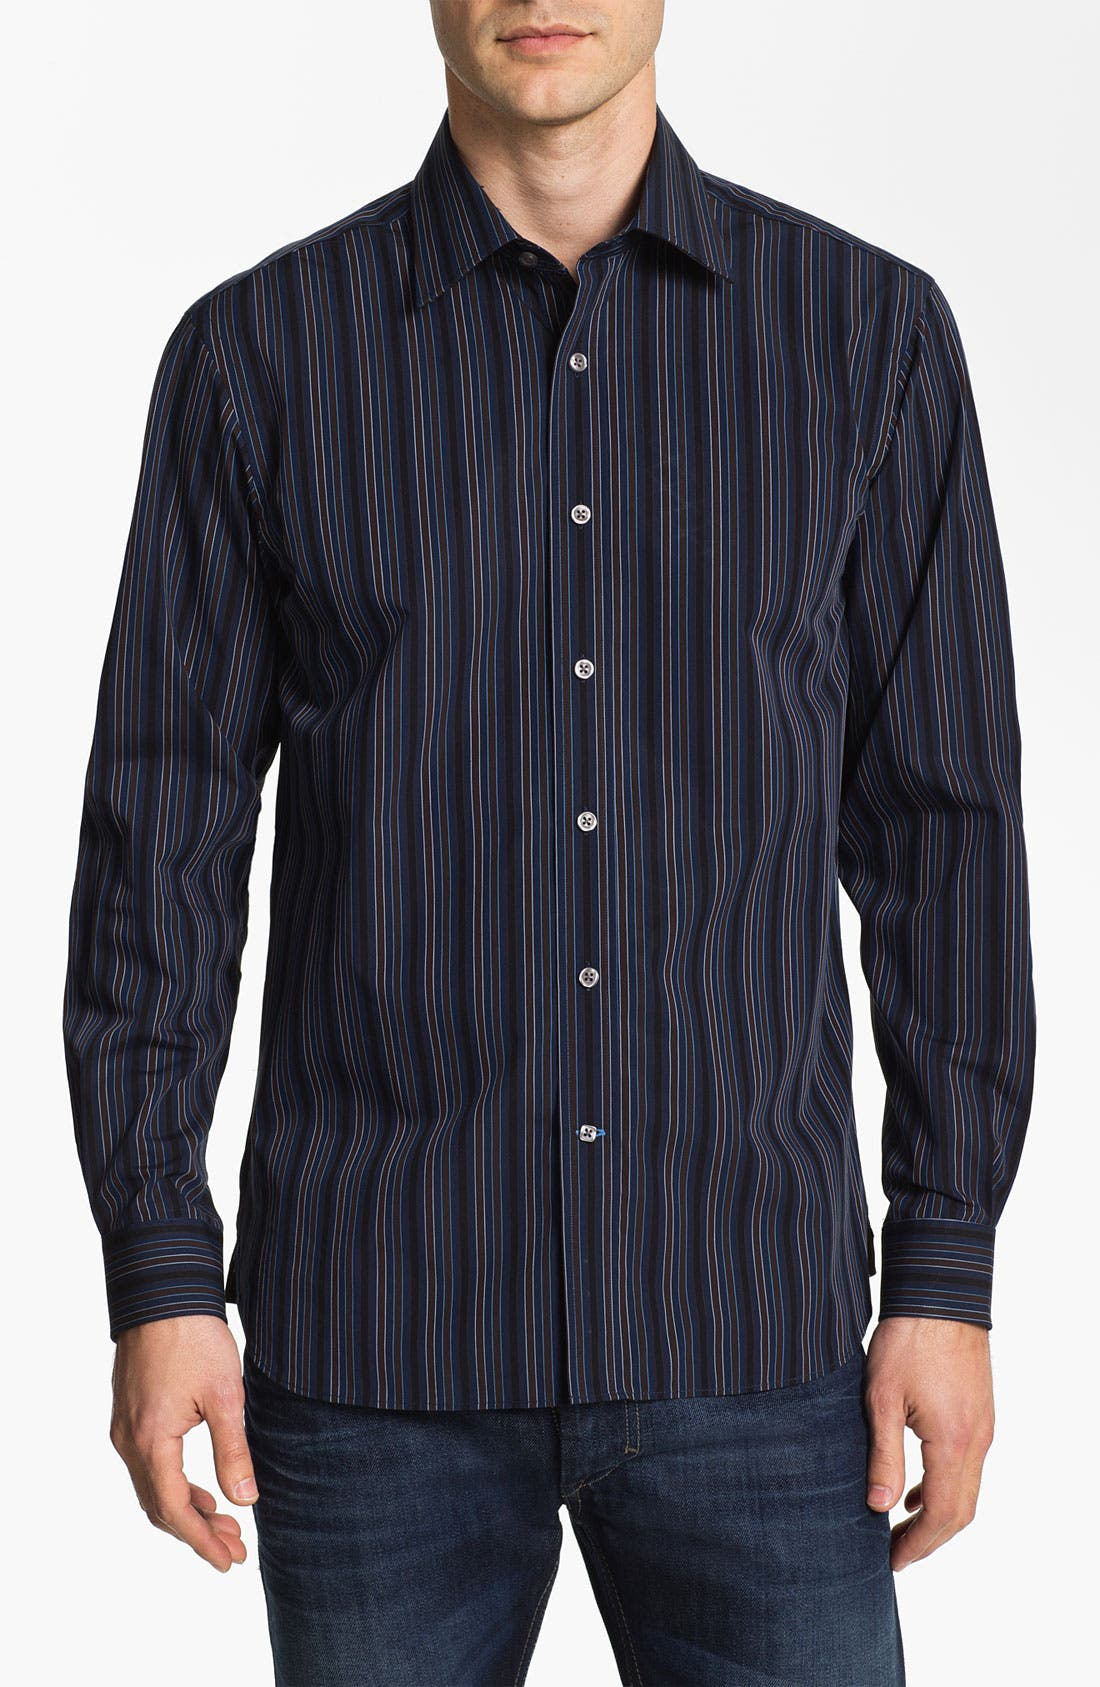 Alternate Image 1 Selected - Report Collection Trim Fit Sport Shirt (Online Exclusive)